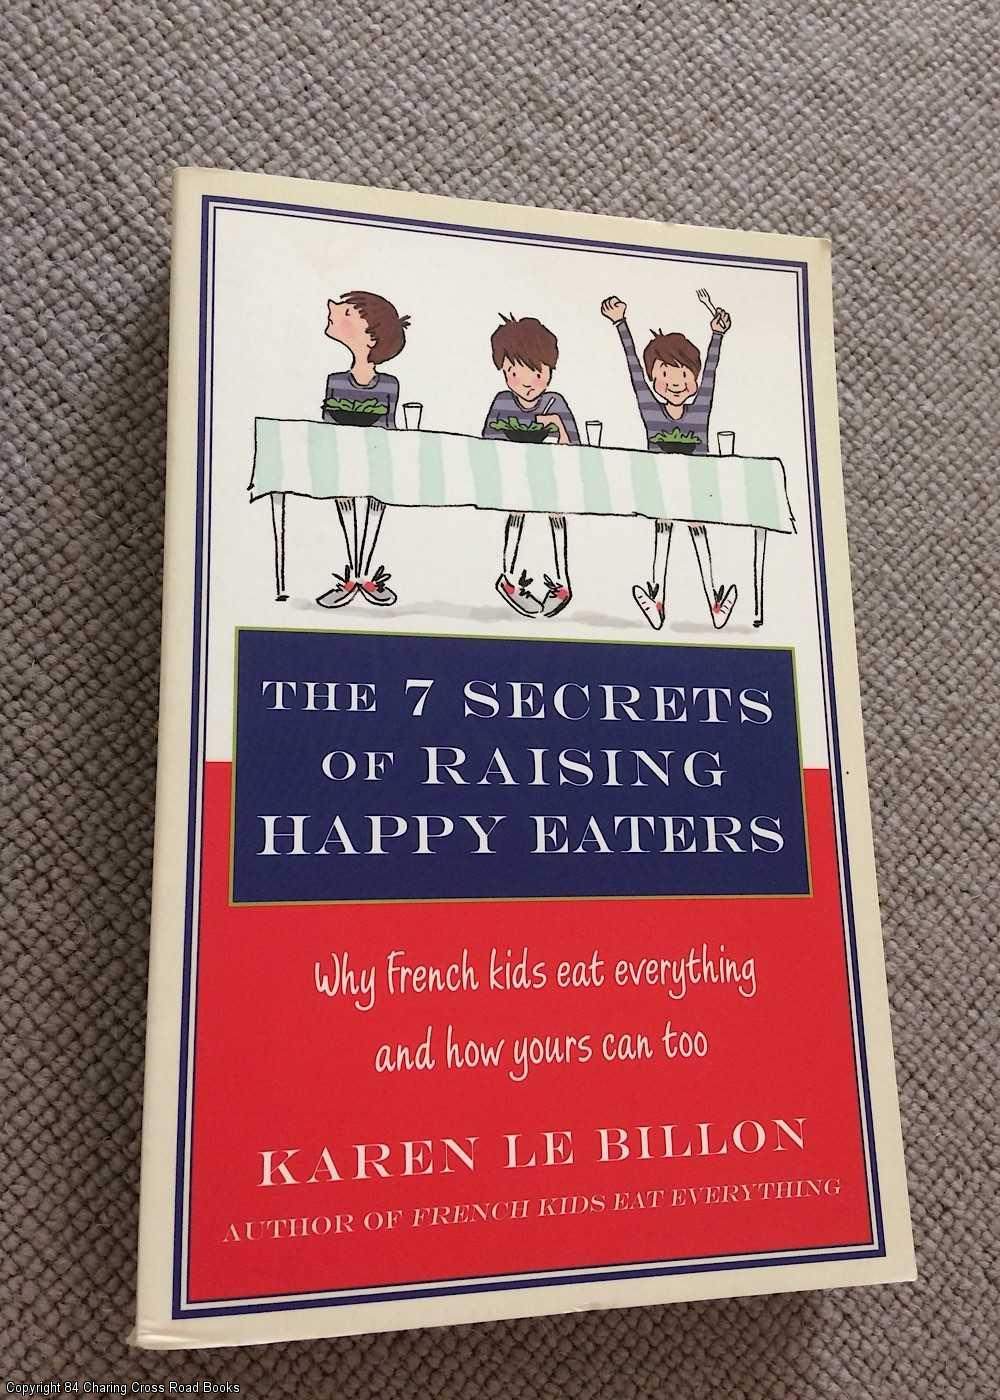 LE BILLON, KAREN - The 7 Secrets of Raising Happy Eaters: Why French kids eat everything and how yours can too!